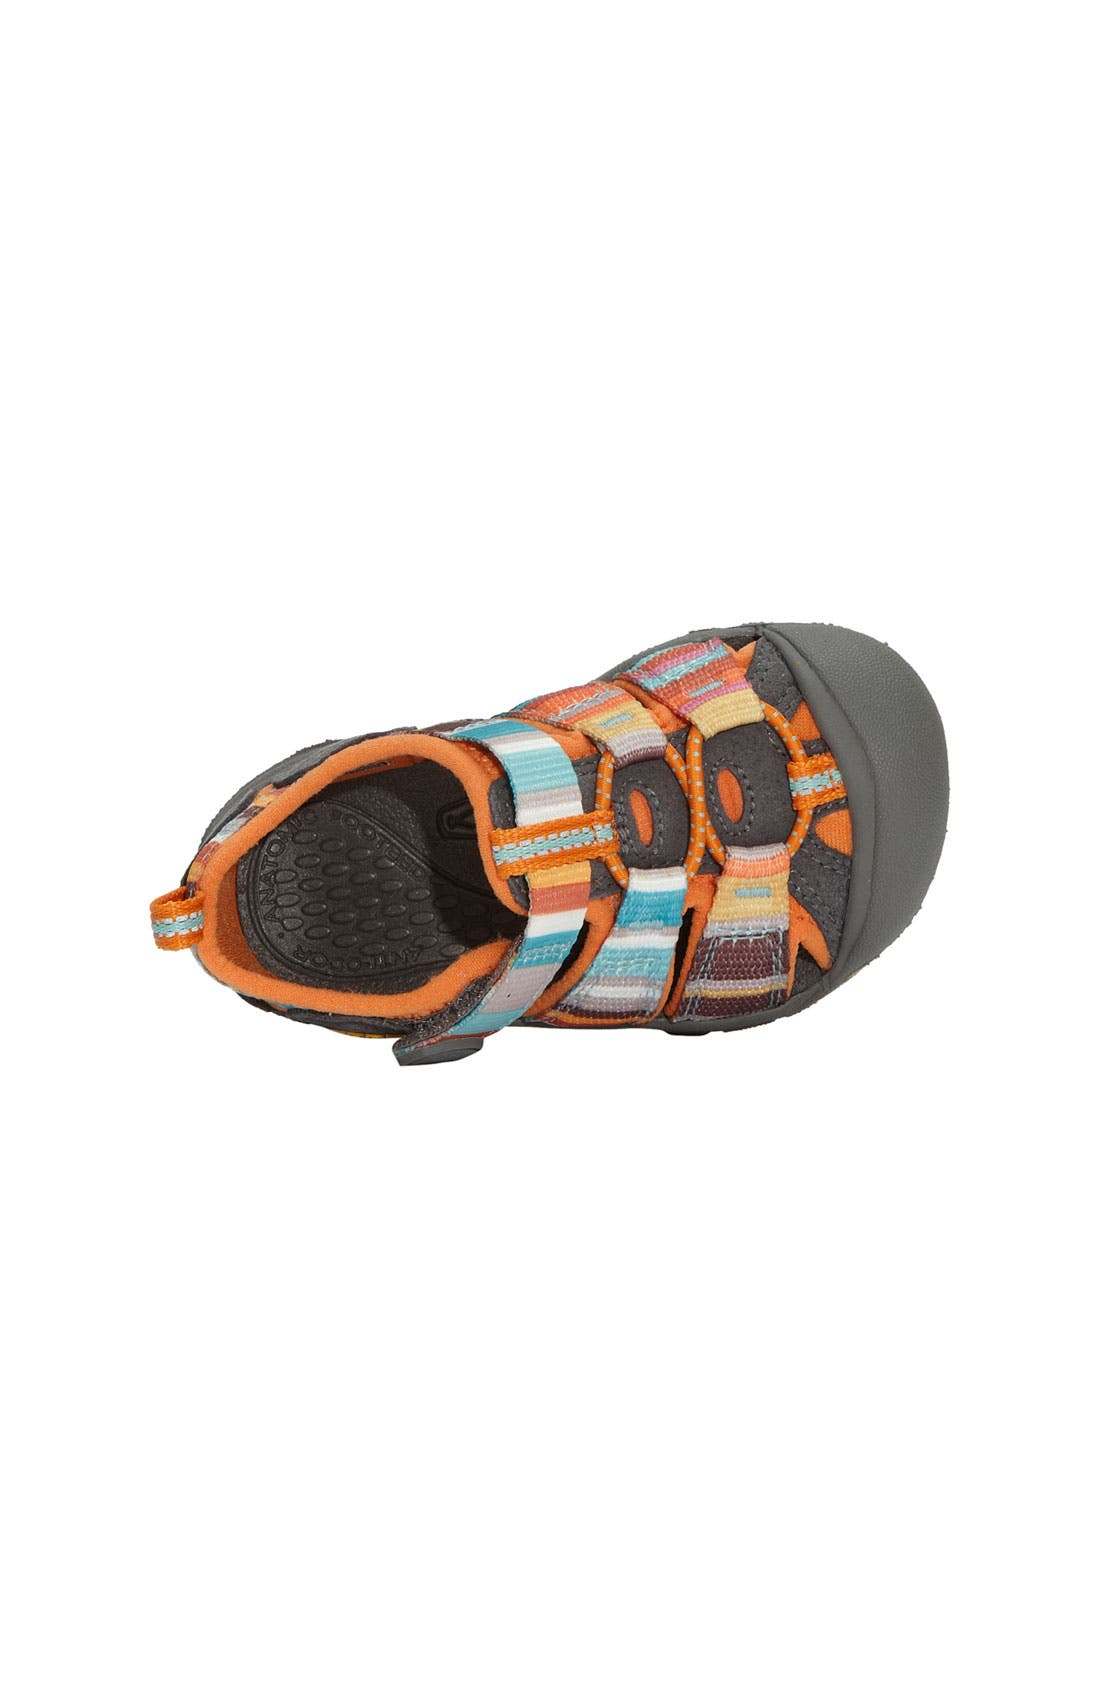 Alternate Image 2  - Keen 'Newport H2' Sandal (Baby & Walker)